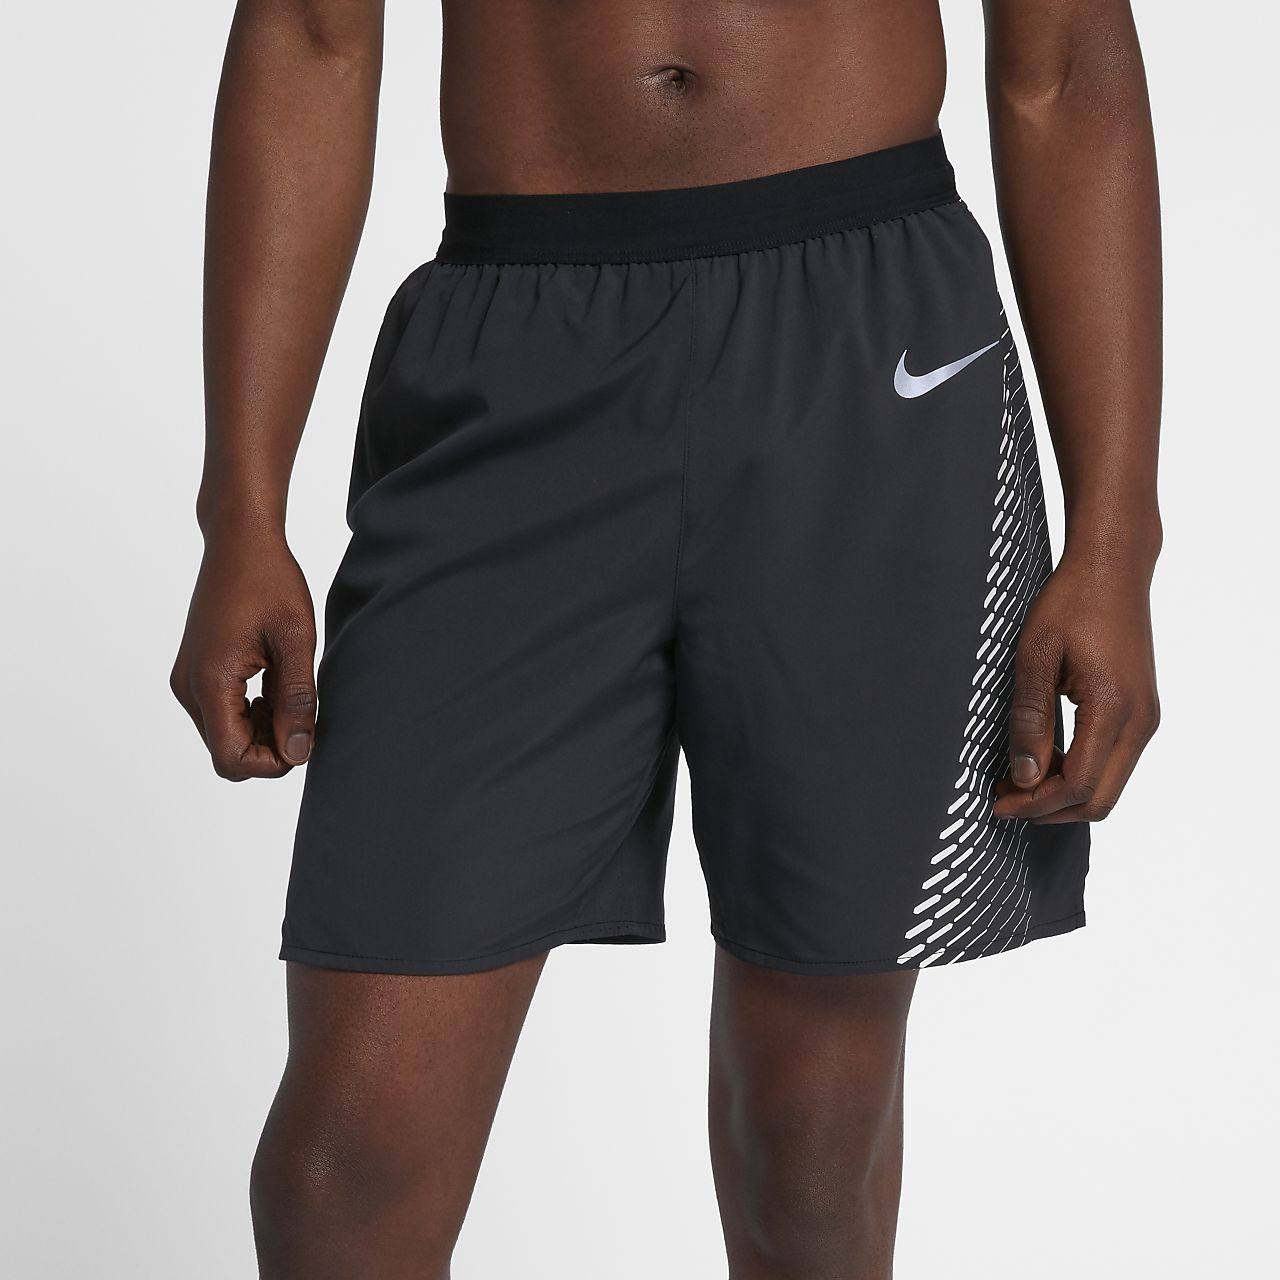 dce6a195045e Lined Running Shorts Nike Distance Men s 7